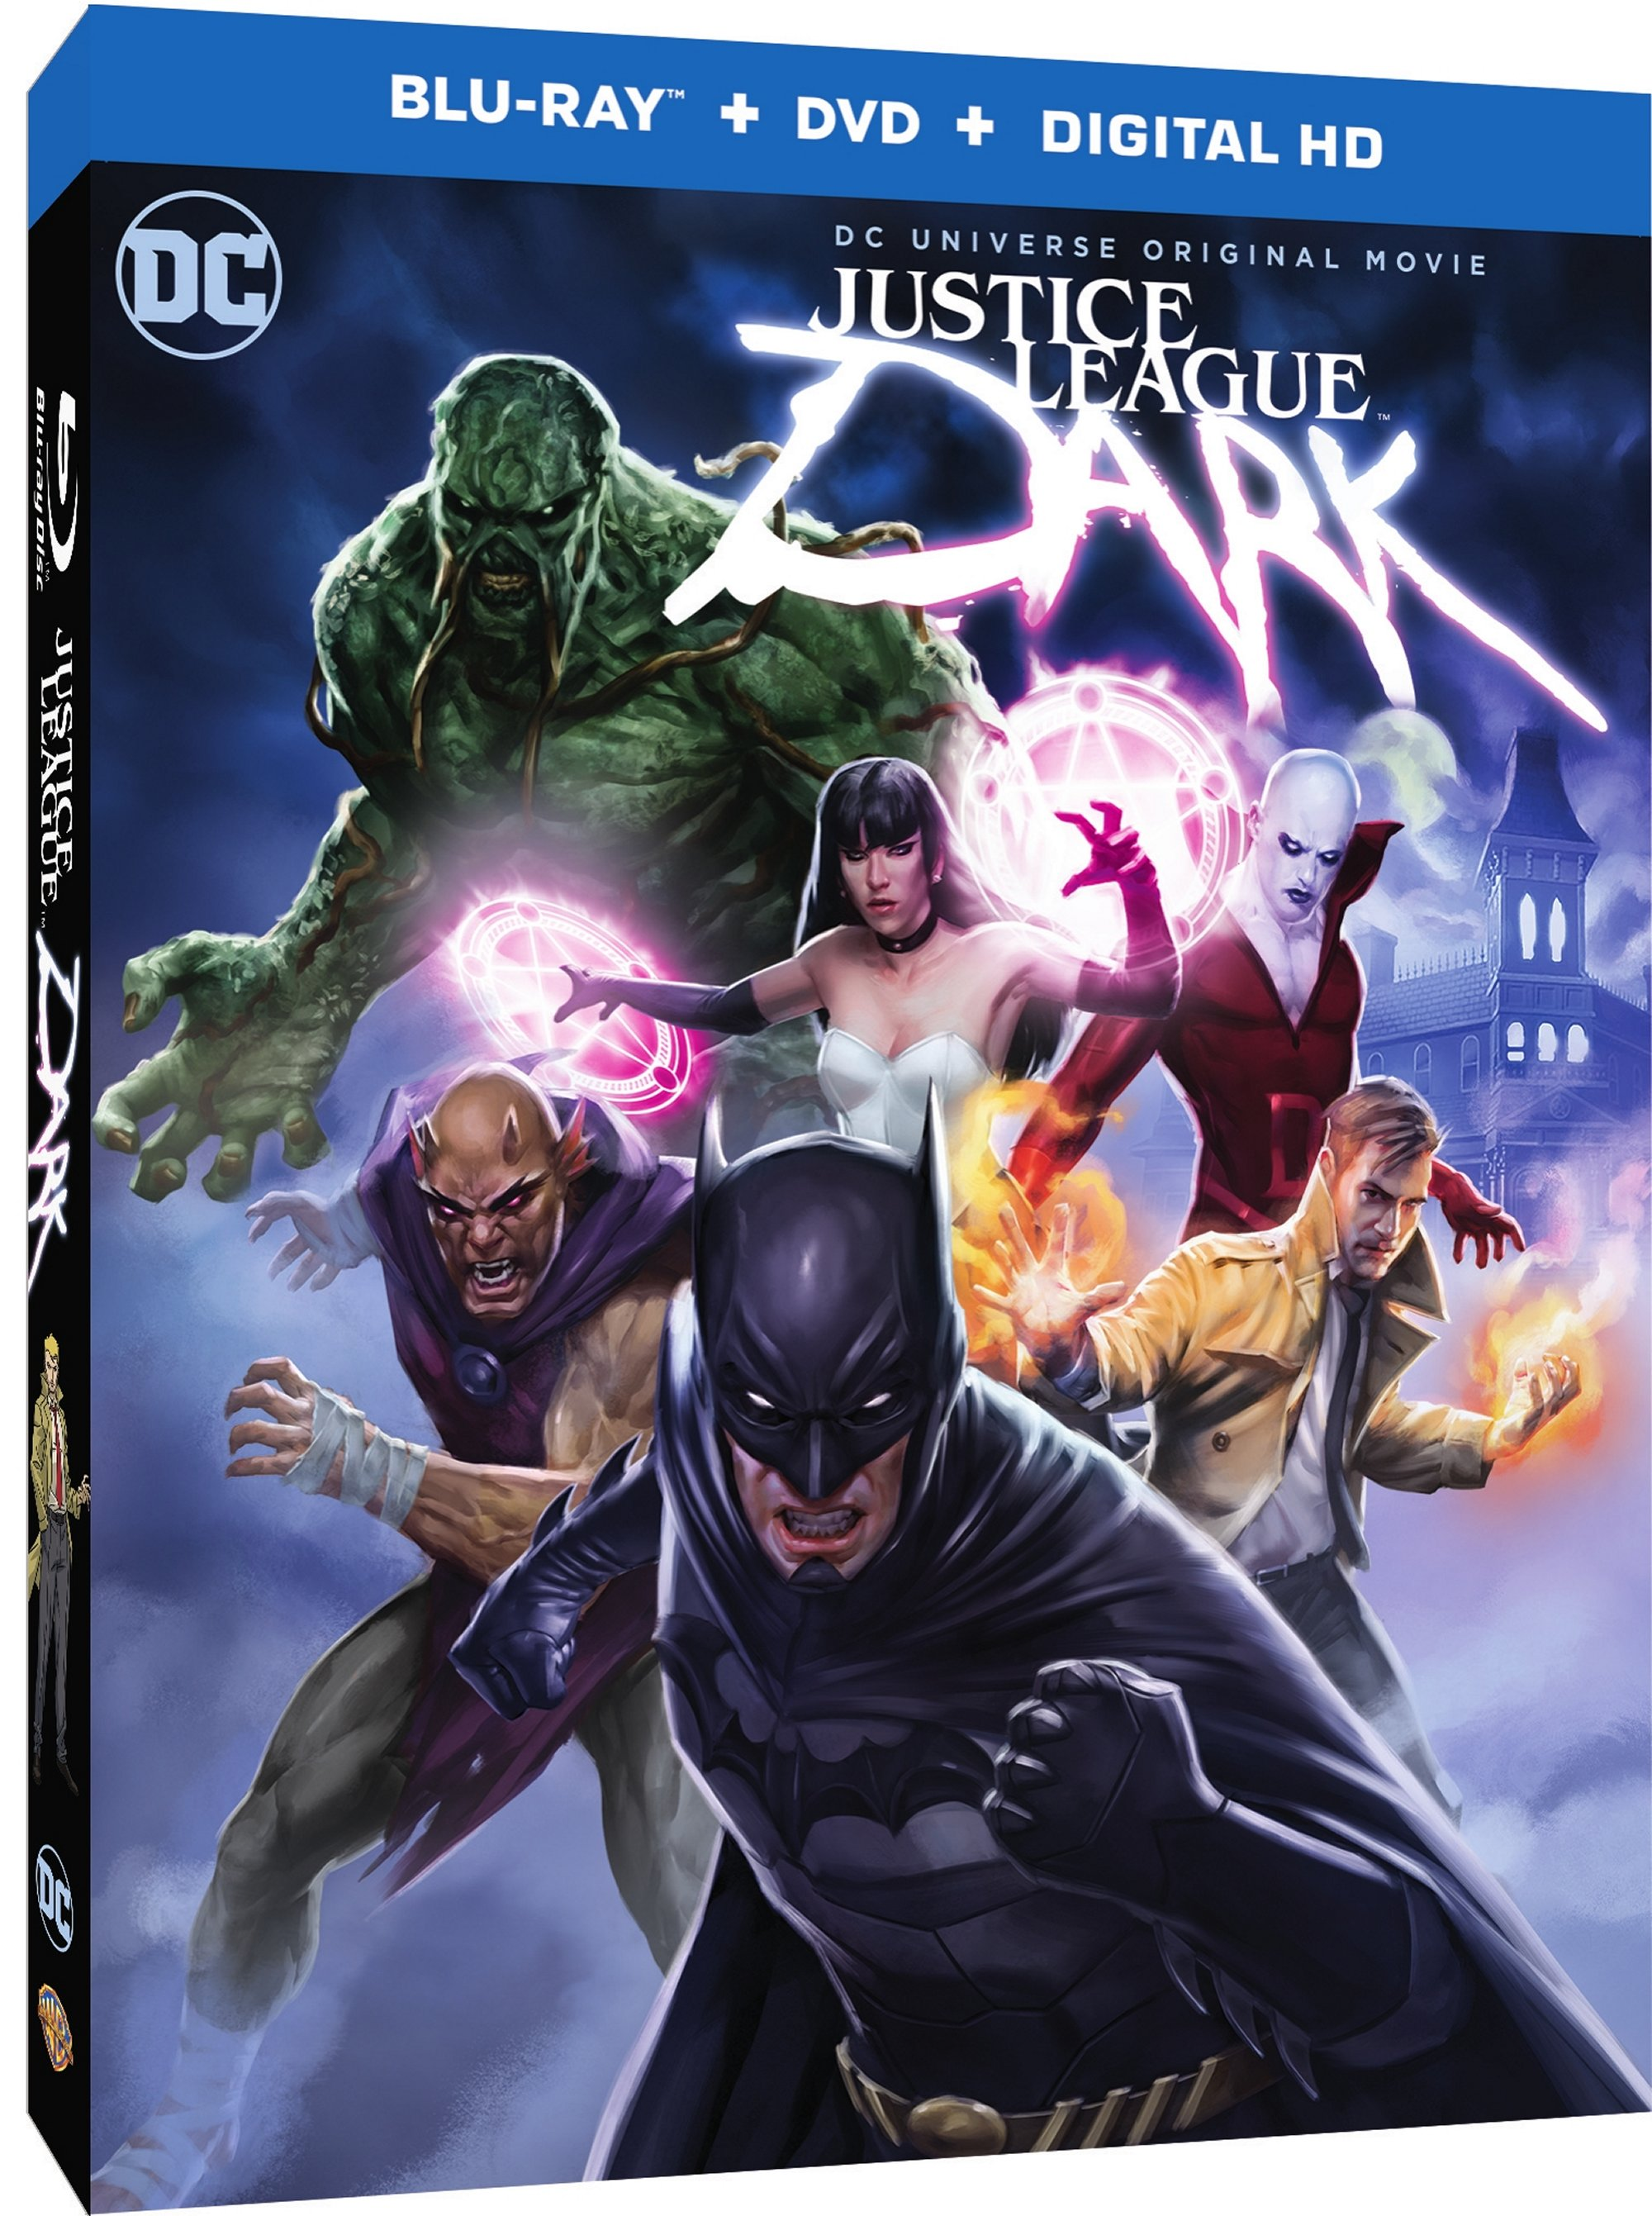 Justice League Dark Release Date, Cover Art And Featurettes Revealed